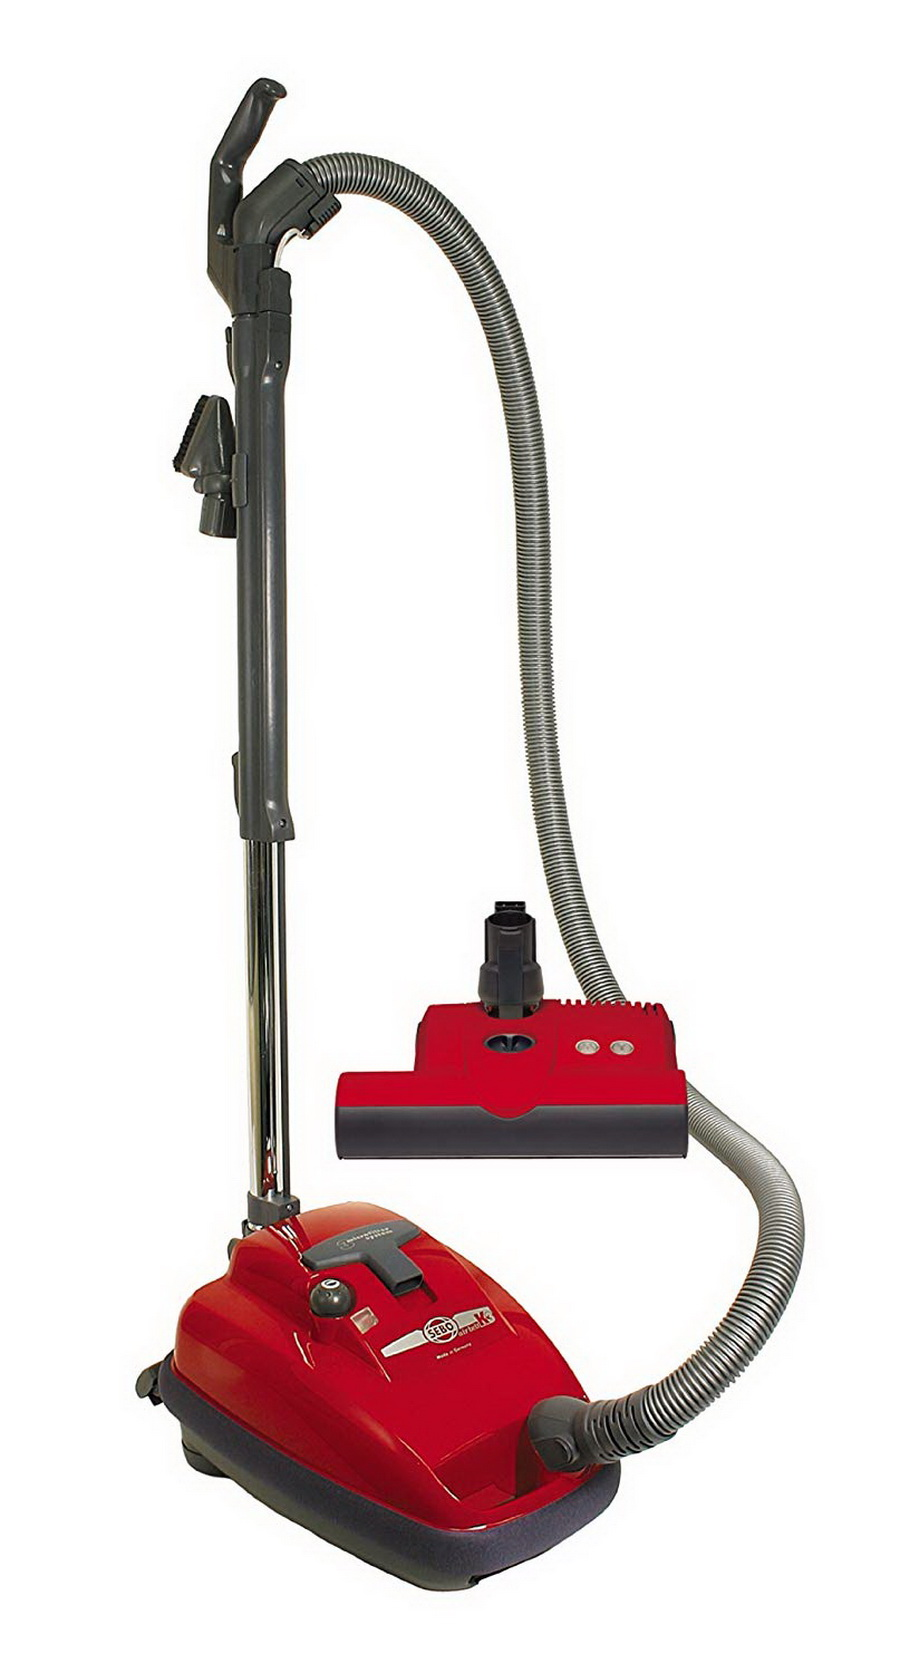 SEBO AIRBELT K3 Premium with ET-1 Power Head and parquet brush (Red or Black)